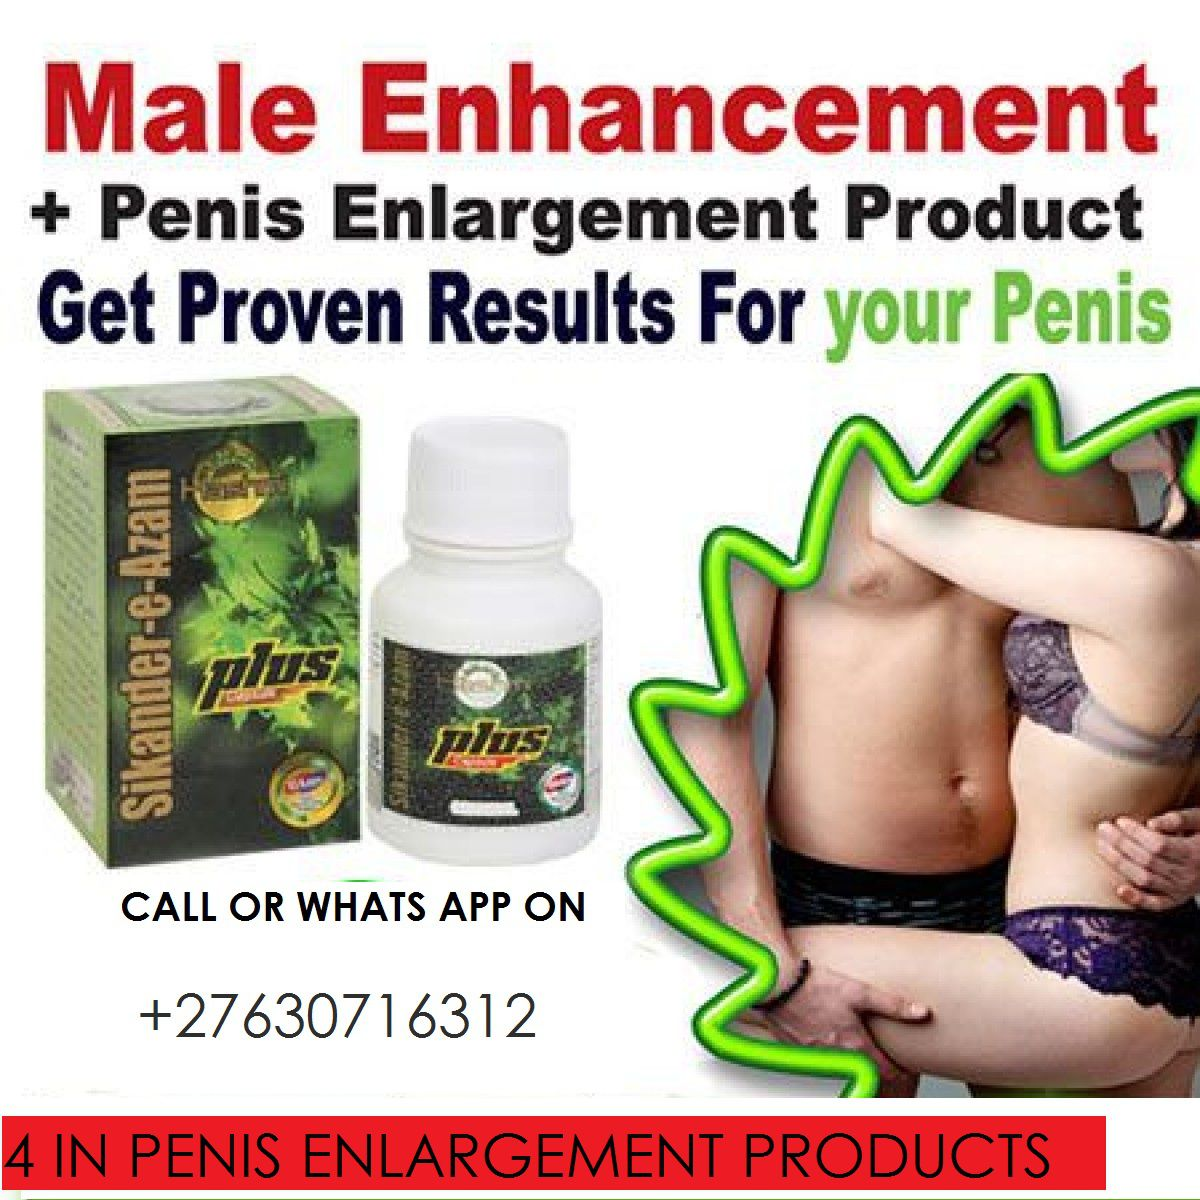 MR BIG (Penis Enlargement Creams) CALL ON +27630716312 IN RANDBURG-Pretoria-Johannesburg- South Africa There are certain capsules and merchandise which promise to growth the dimensions of penis and there's absolute confidence within the truth that because of the brief glide of the blood they're temporarily capable of upload some inches to the penis. but lamentably this transformation is not everlasting. in a day or  because the blood flow to the organ turns into normal the penis comes to its authentic size. as a way to carry a everlasting enlargement in penis size it's far critical that we stick to some actual techniques and dietary consumption. this e-book affords you with the primary necessities of penis growth .just keep on with the advice on this e-book, persist with the routine define